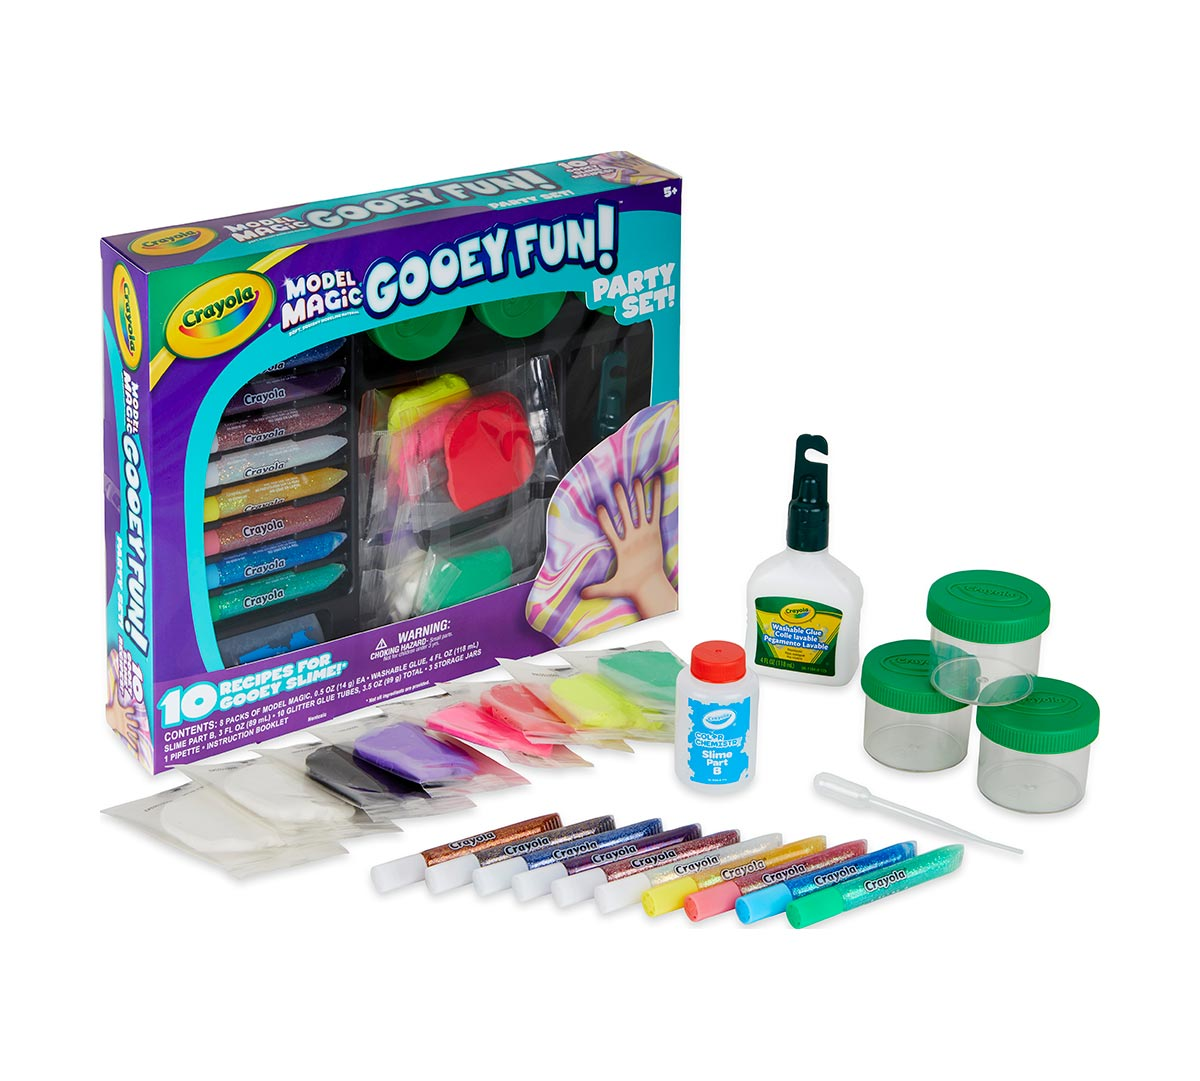 Model Magic Gooey Fun Party Set